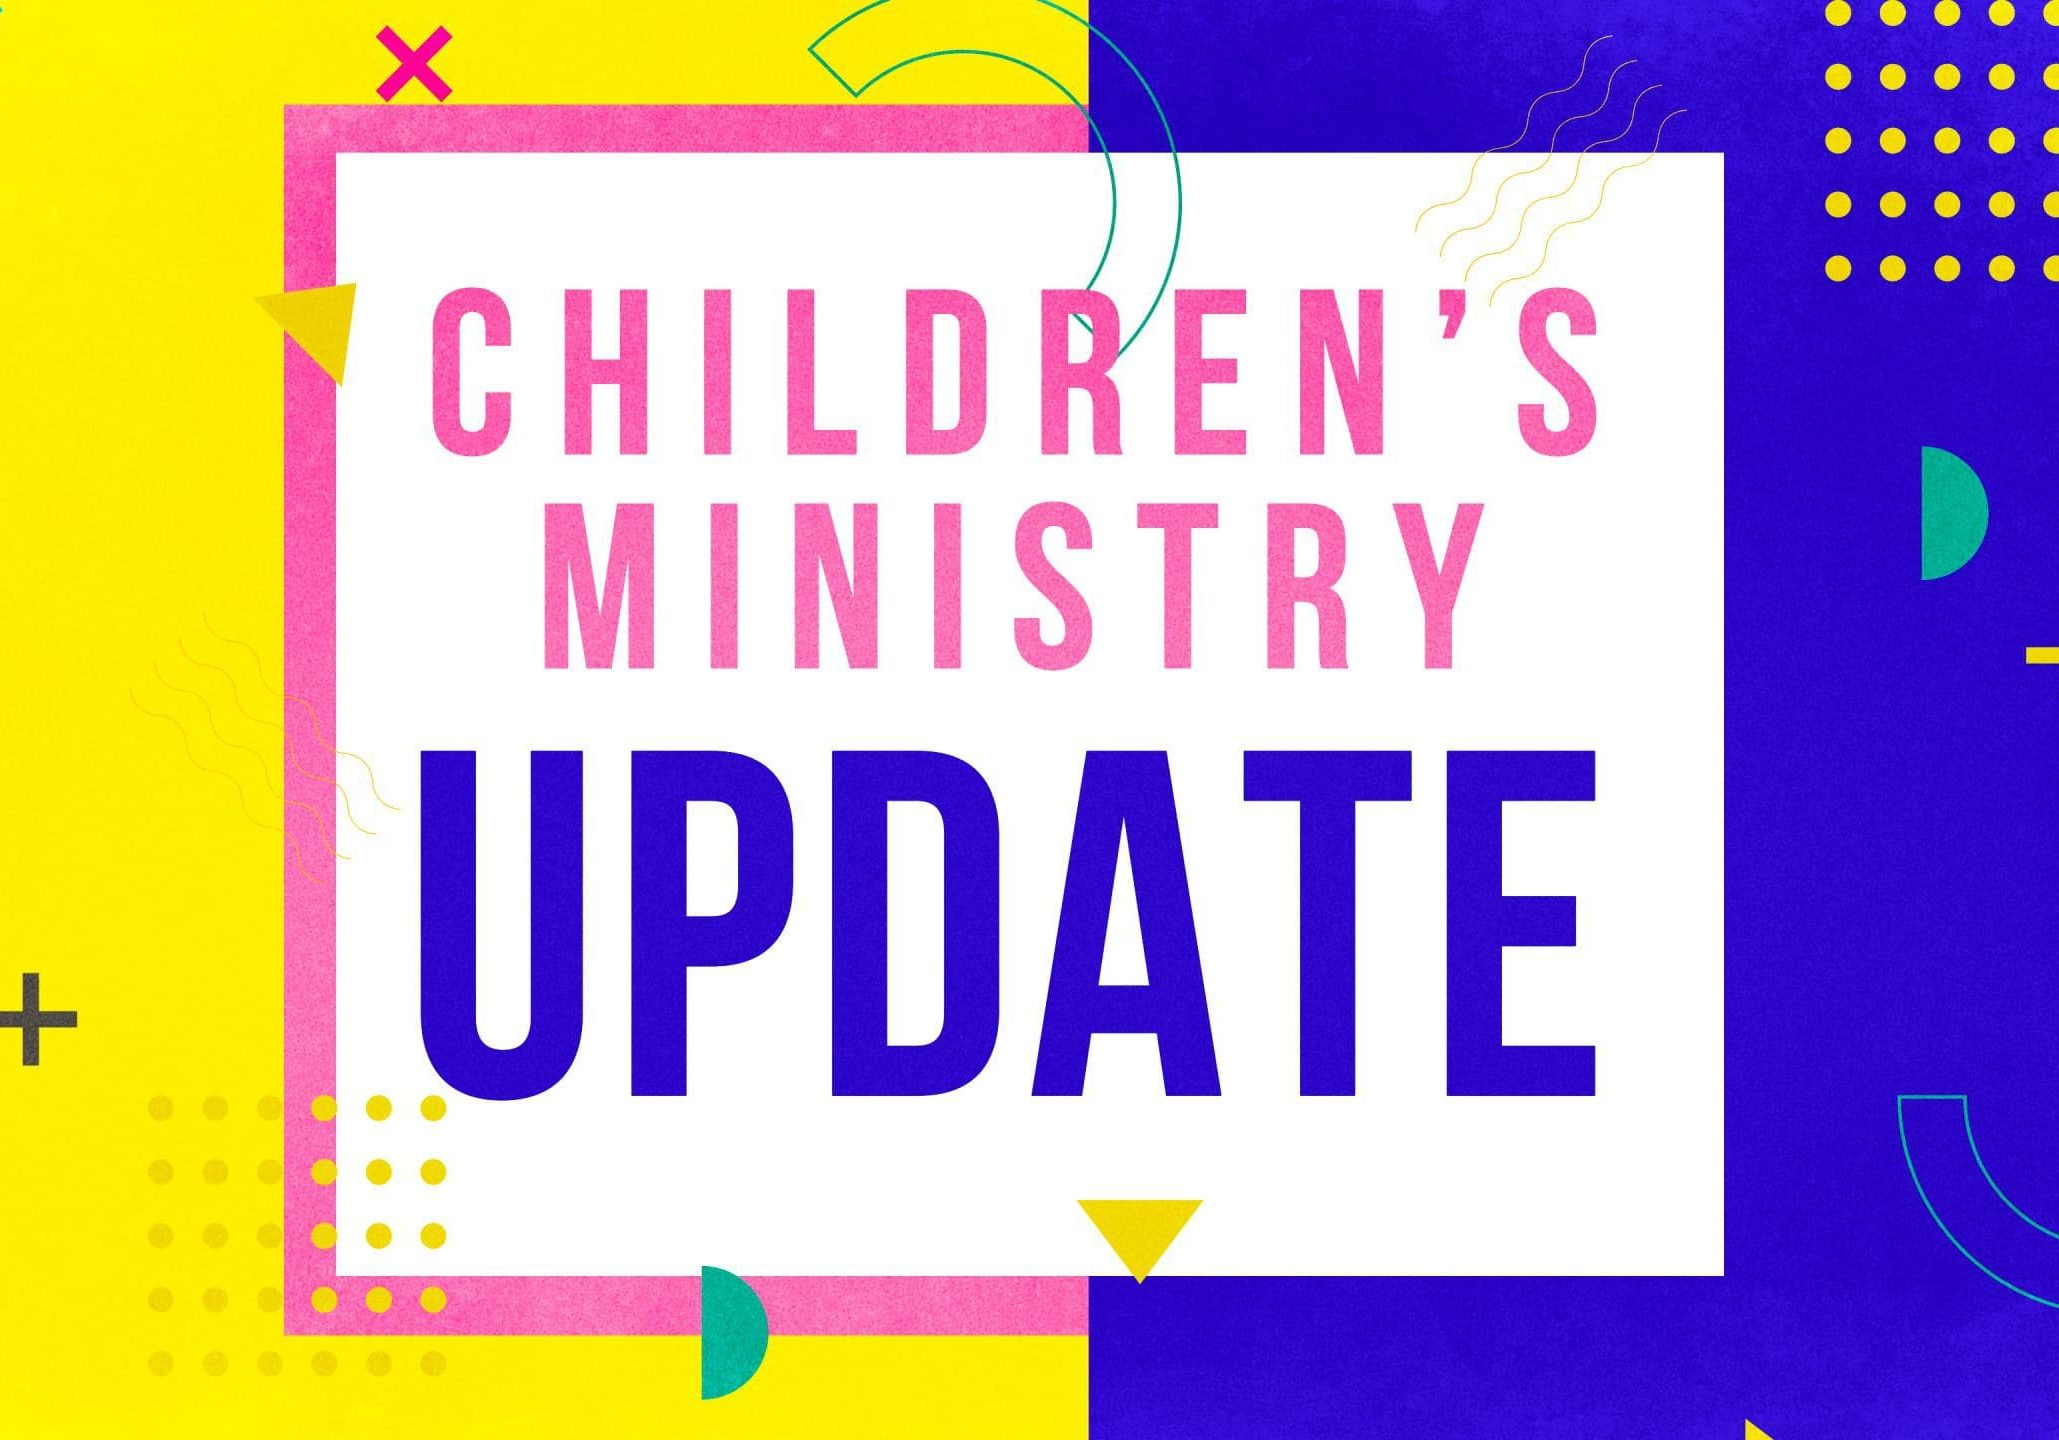 Childrens Ministry Update